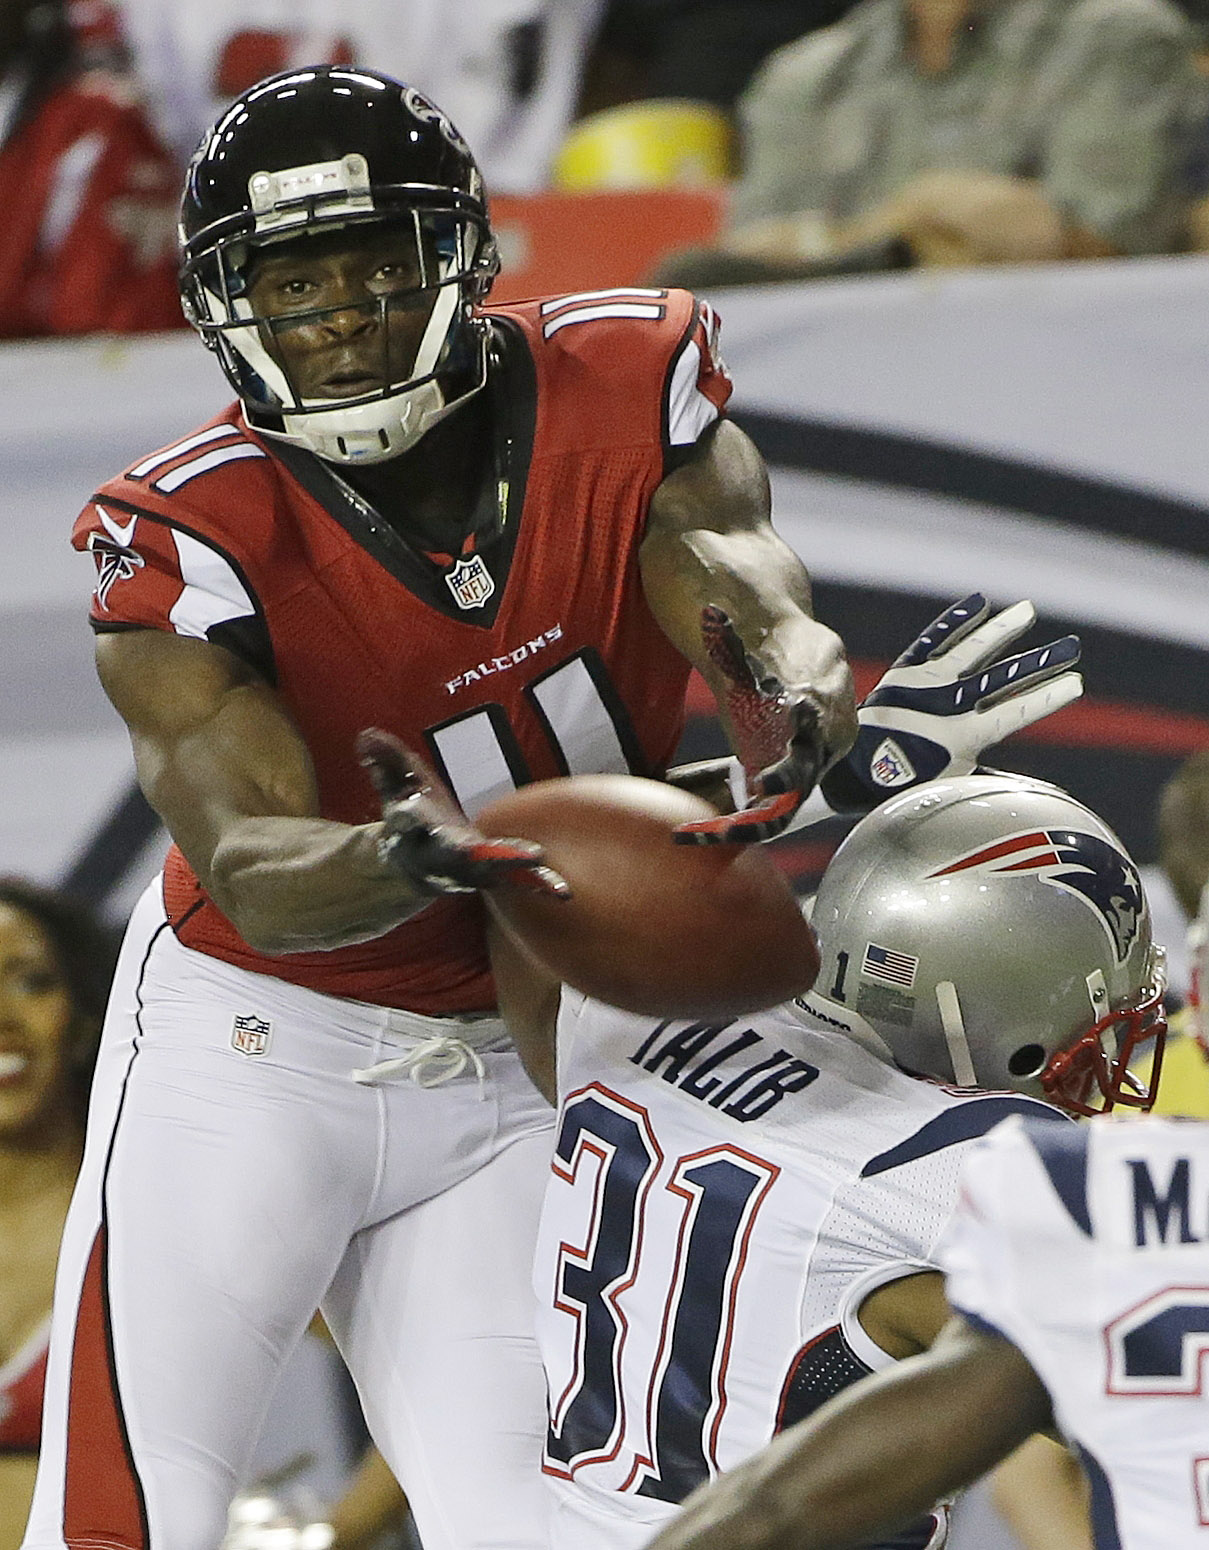 Atlanta Falcons wide receiver Julio Jones (11) attempts a catch against New England Patriots cornerback Aqib Talib (31) during the first half of an NFL football game, Sunday, Sept. 29, 2013, in Atlanta